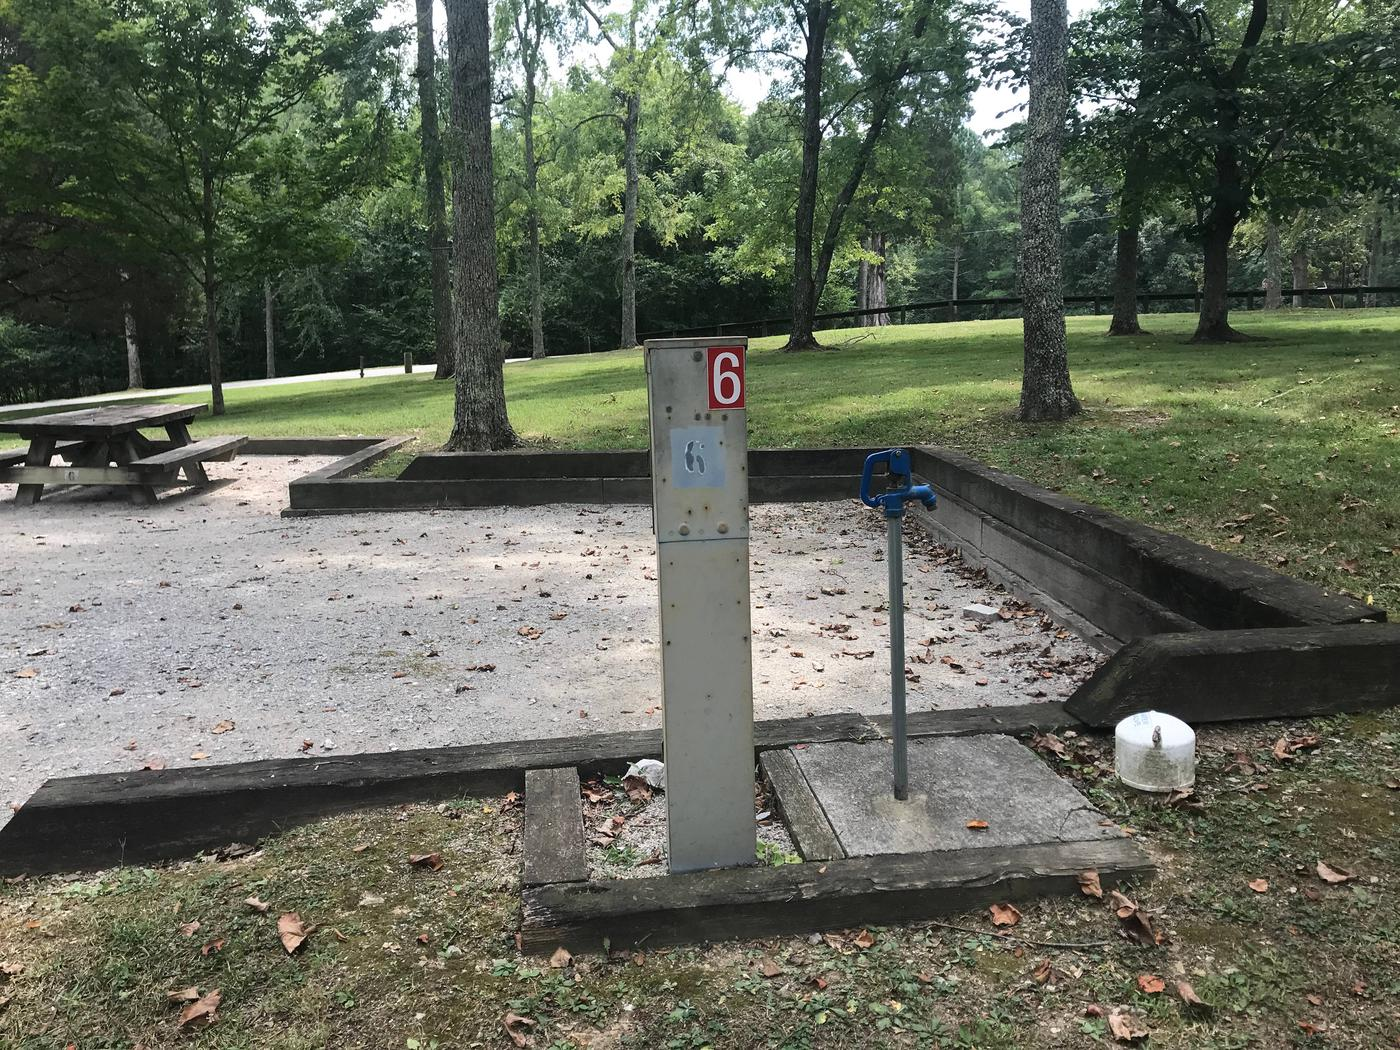 WILLOW GROVE CAMPGROUND SITE # 6 UTILITIESWILLOW GROVE CAMPGROUND SITE # 6 WHITE CAP IS WATER VALVE, NOT SEWER